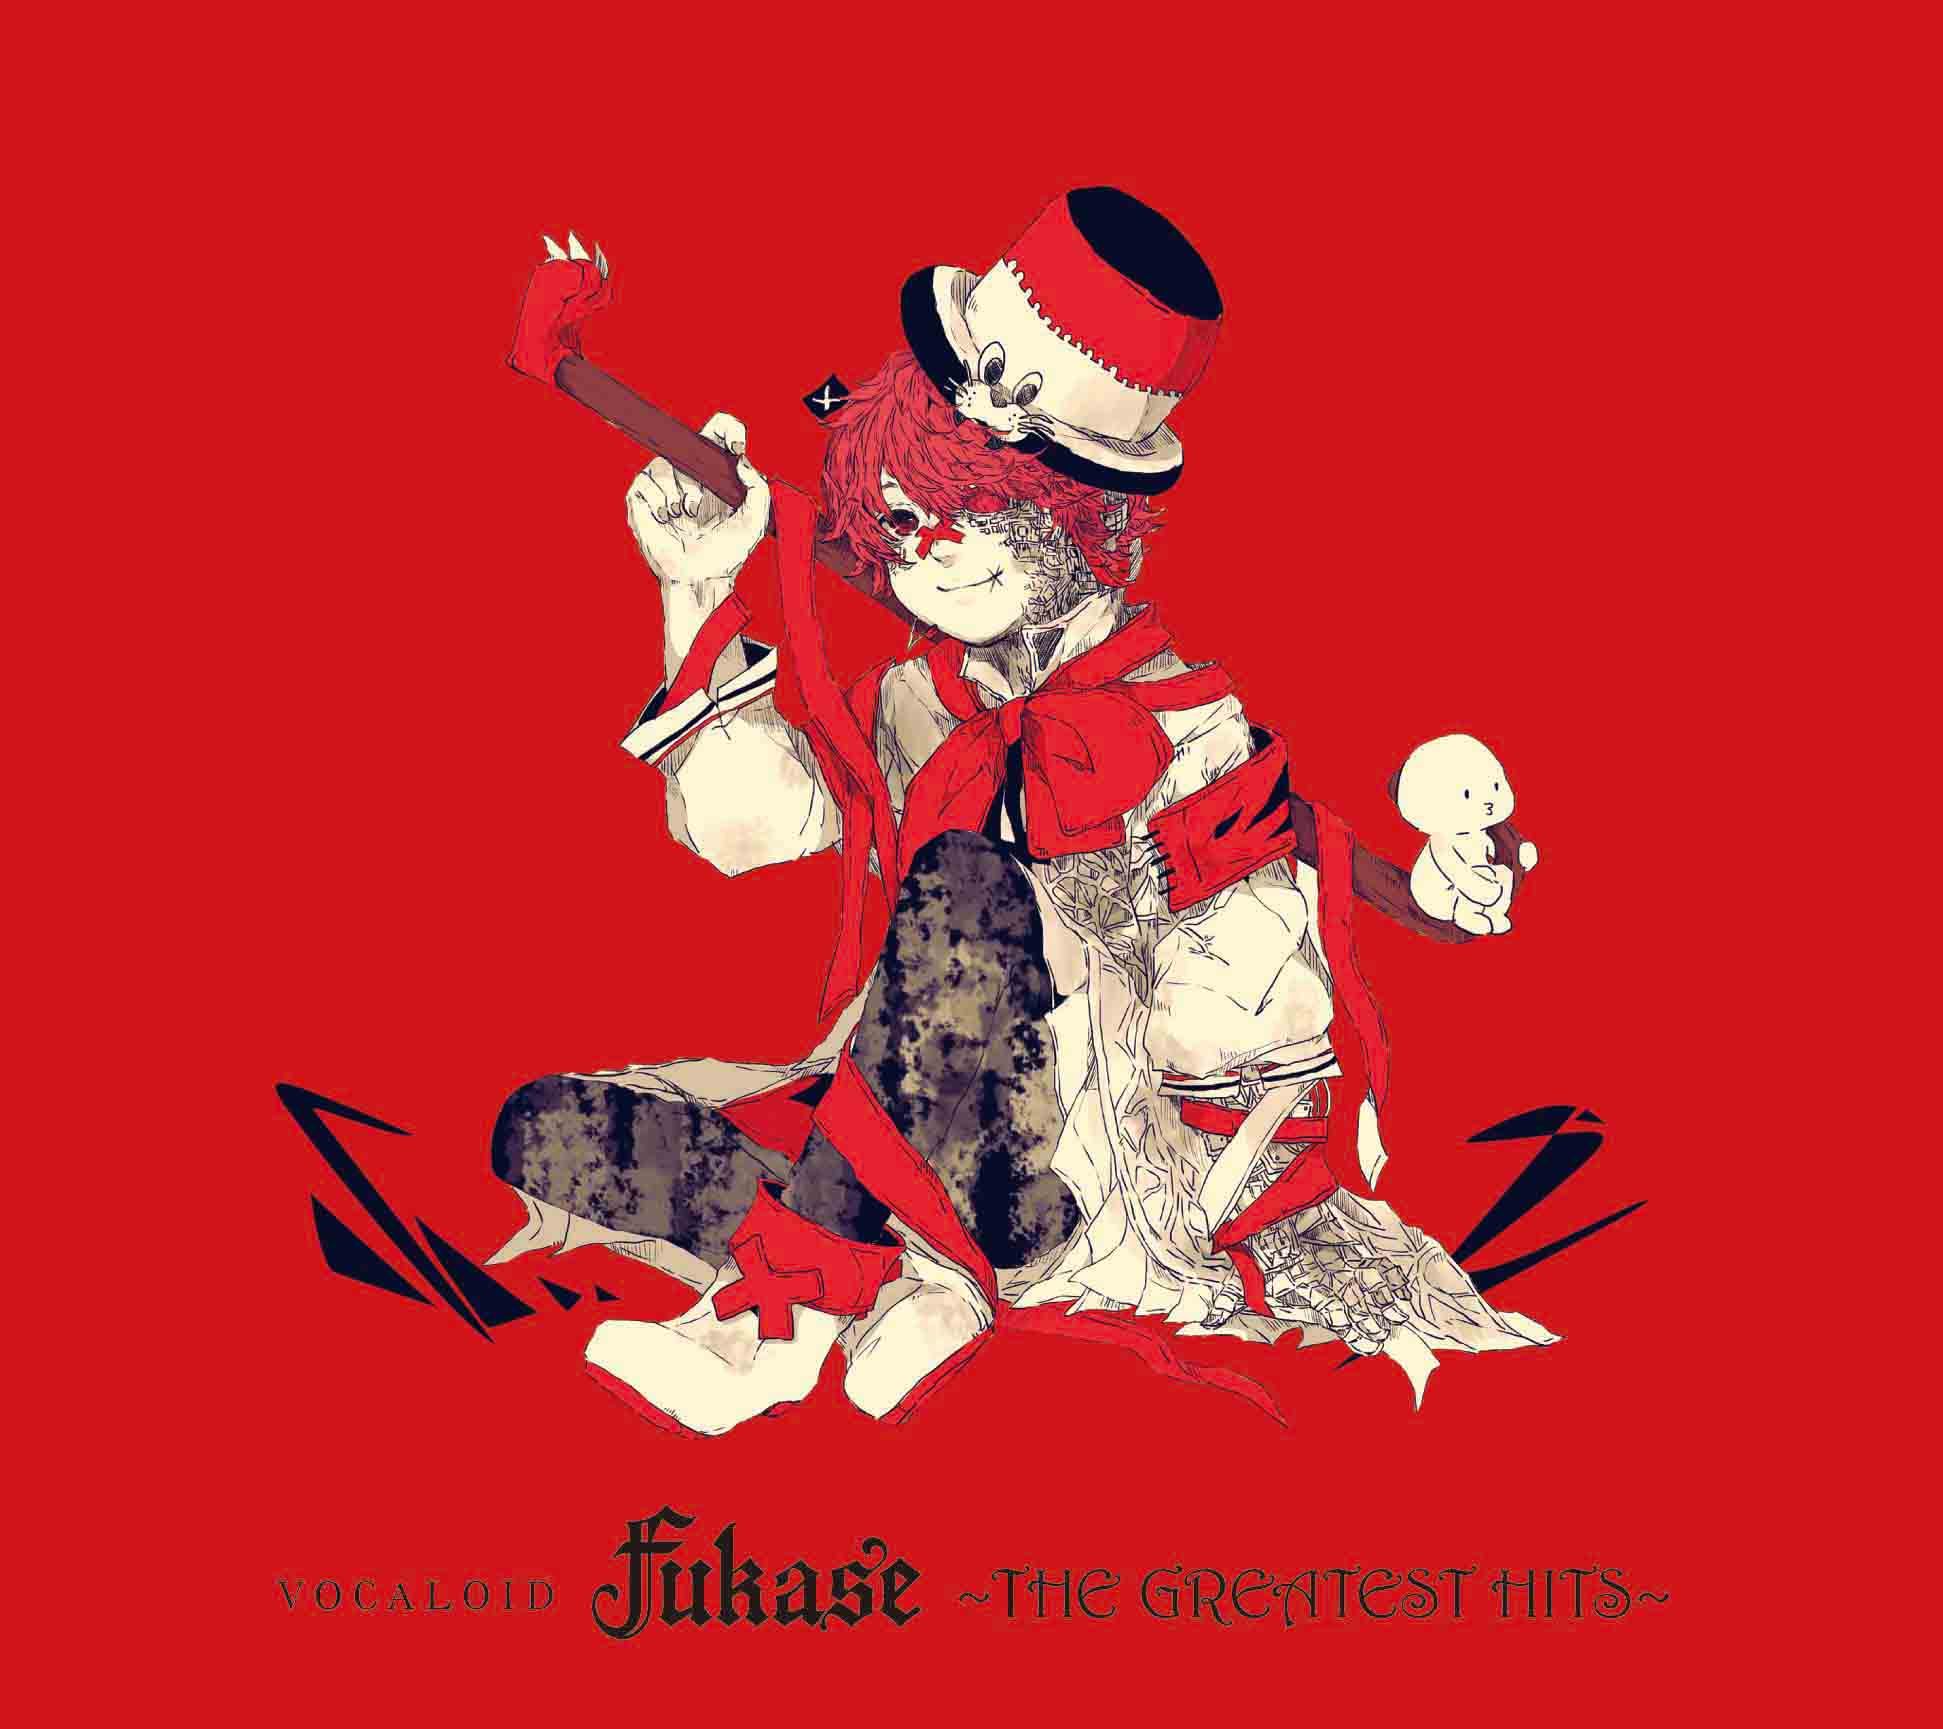 V.A._VOCALOID Fukase ~THE GREATEST HITS~(初回盤)